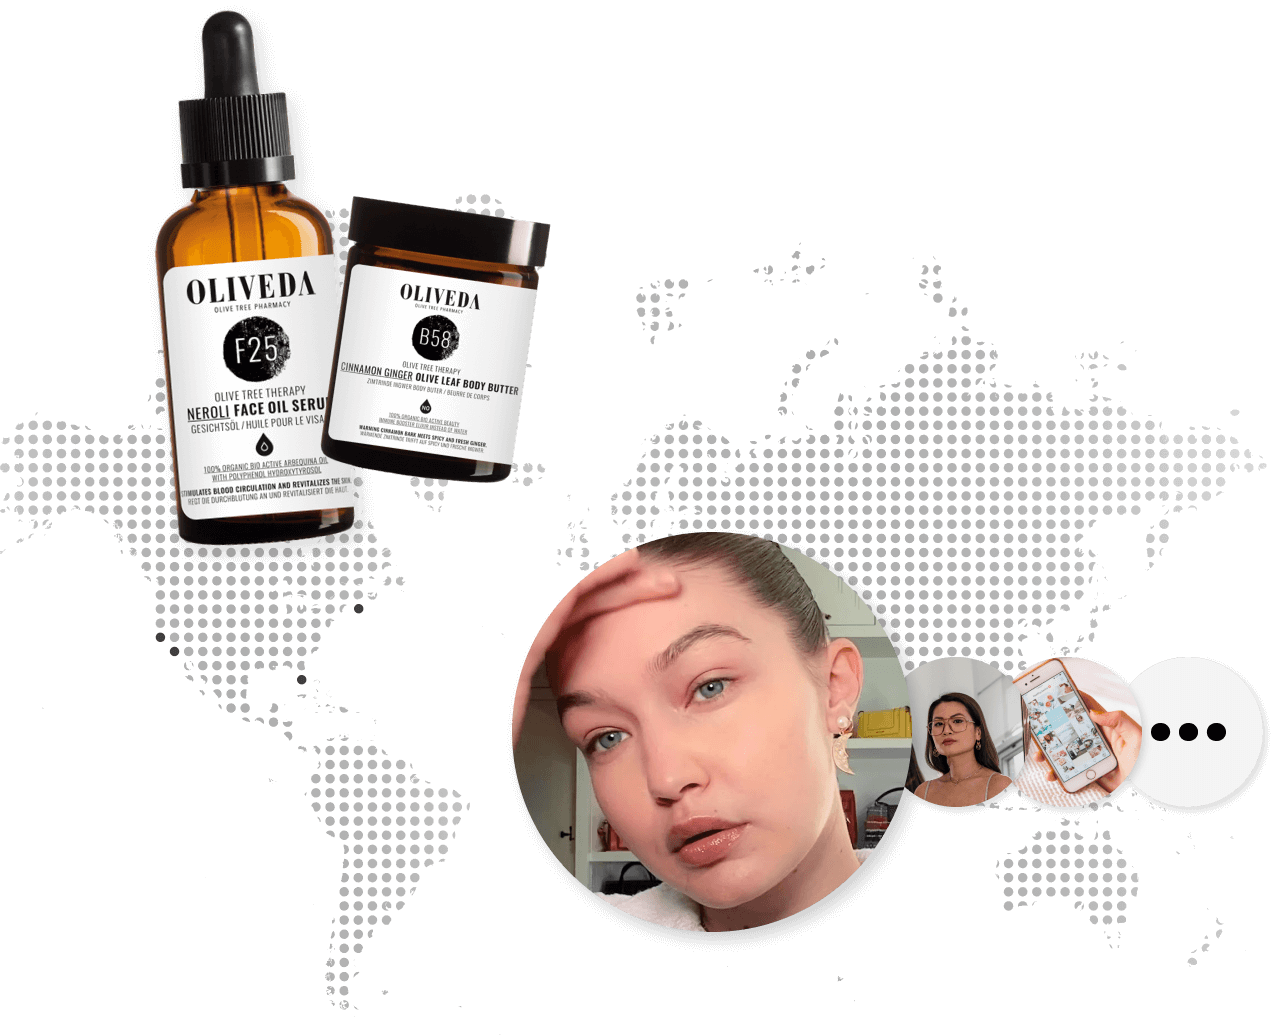 World map showing new US showcase locations in San Francisco, Los Angeles, Miami, and NYC, with a photo of Gigi Hadid and Oliveda products